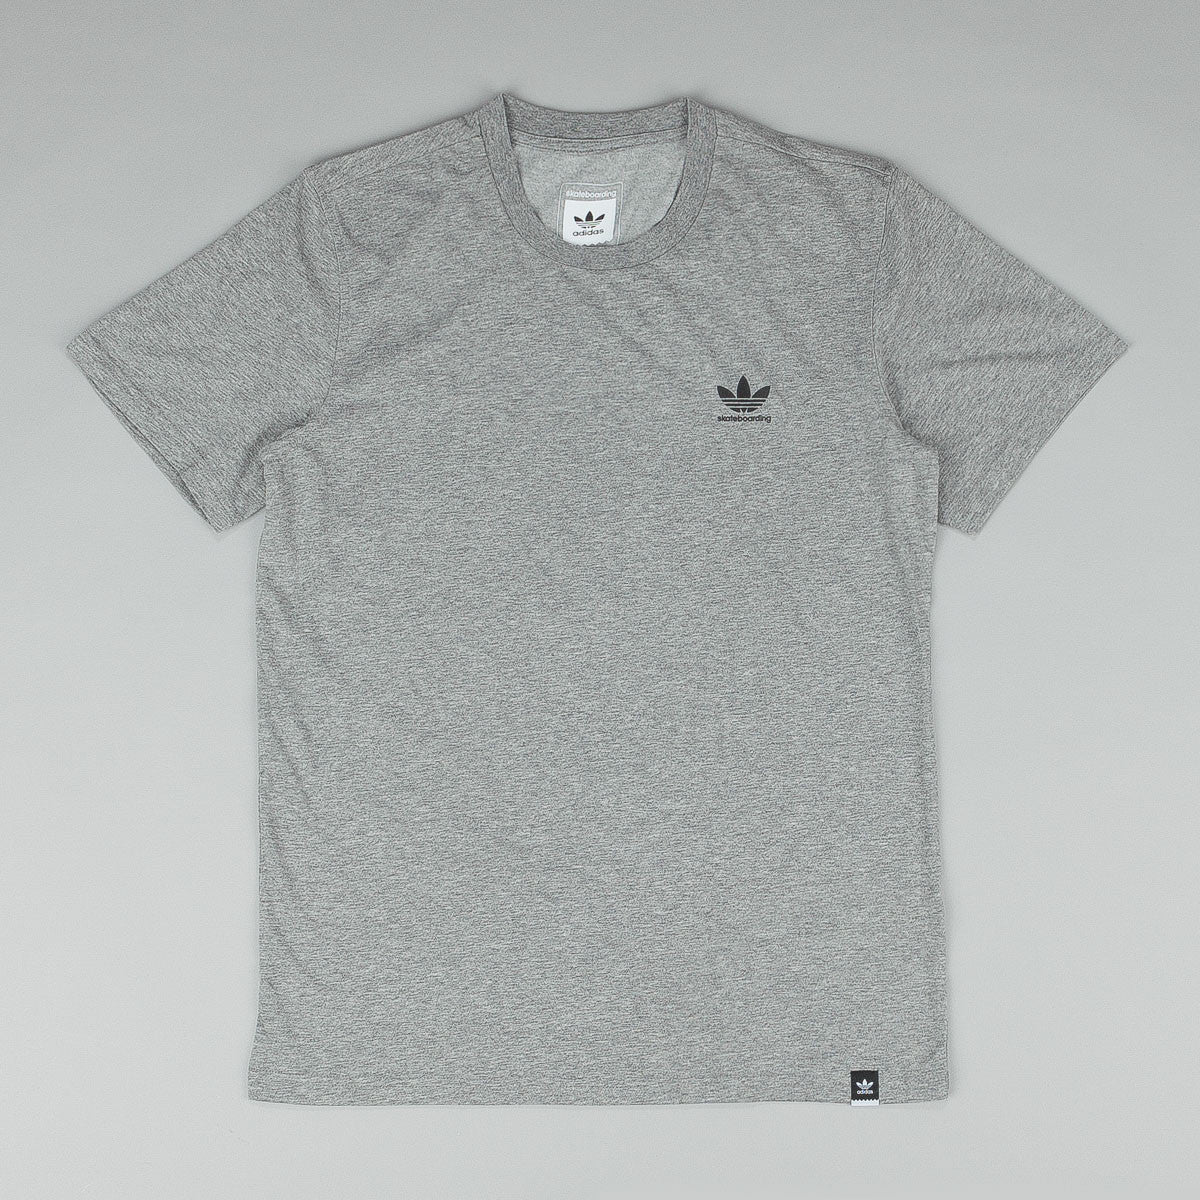 Adidas Adv 2.0 Logo T-Shirt - Core Heather Grey